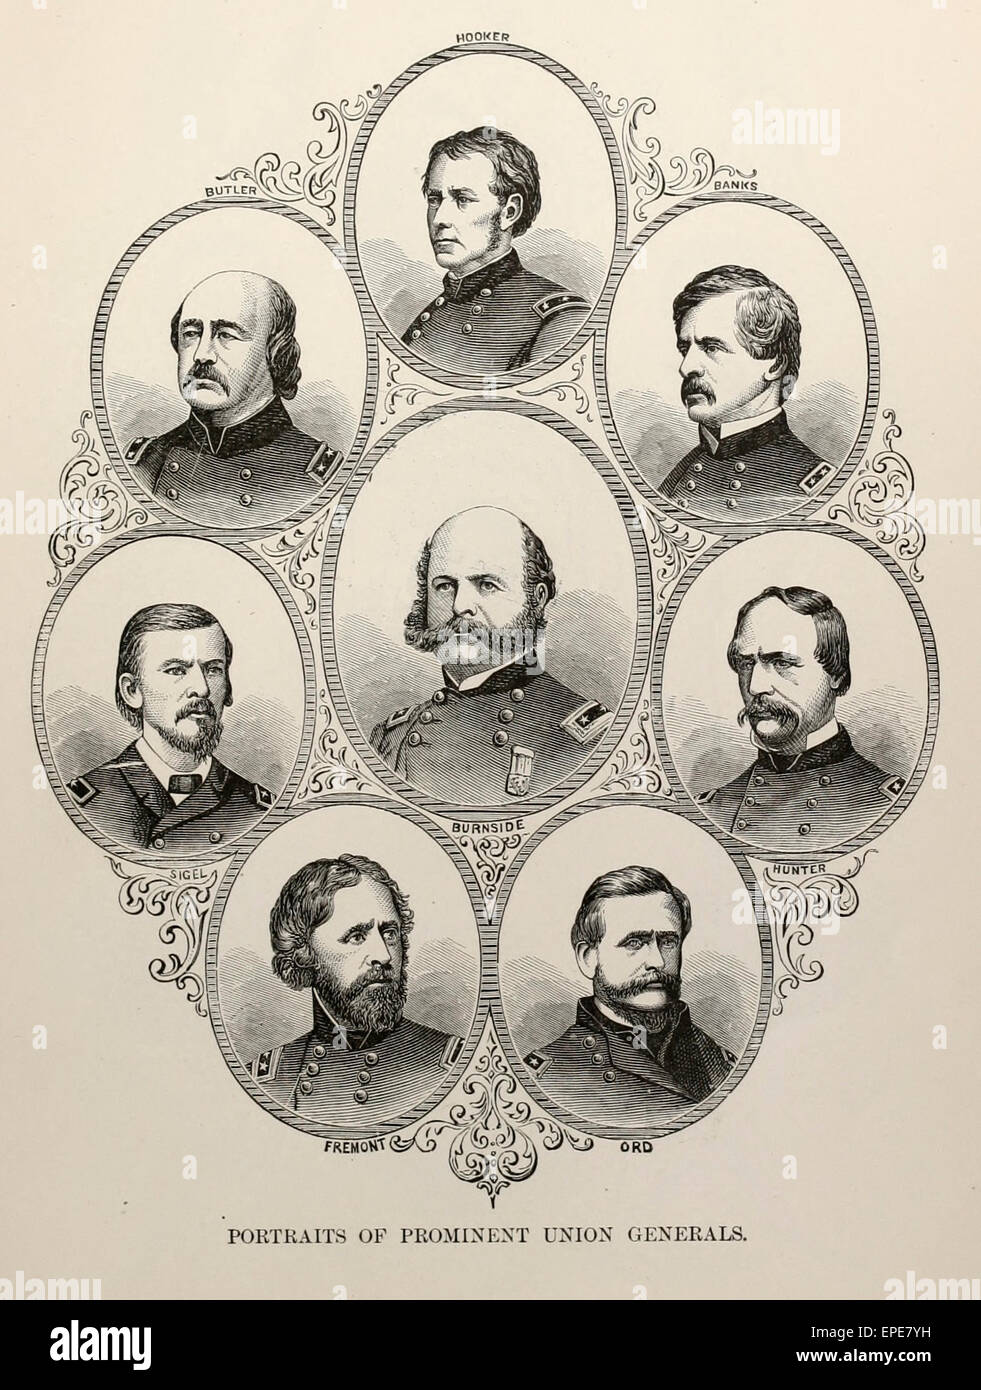 Portraits of Prominent Union Generals during the USA Civil War - Fremont, Ord, Burnside, Hunter, Sigel, Butler, - Stock Image